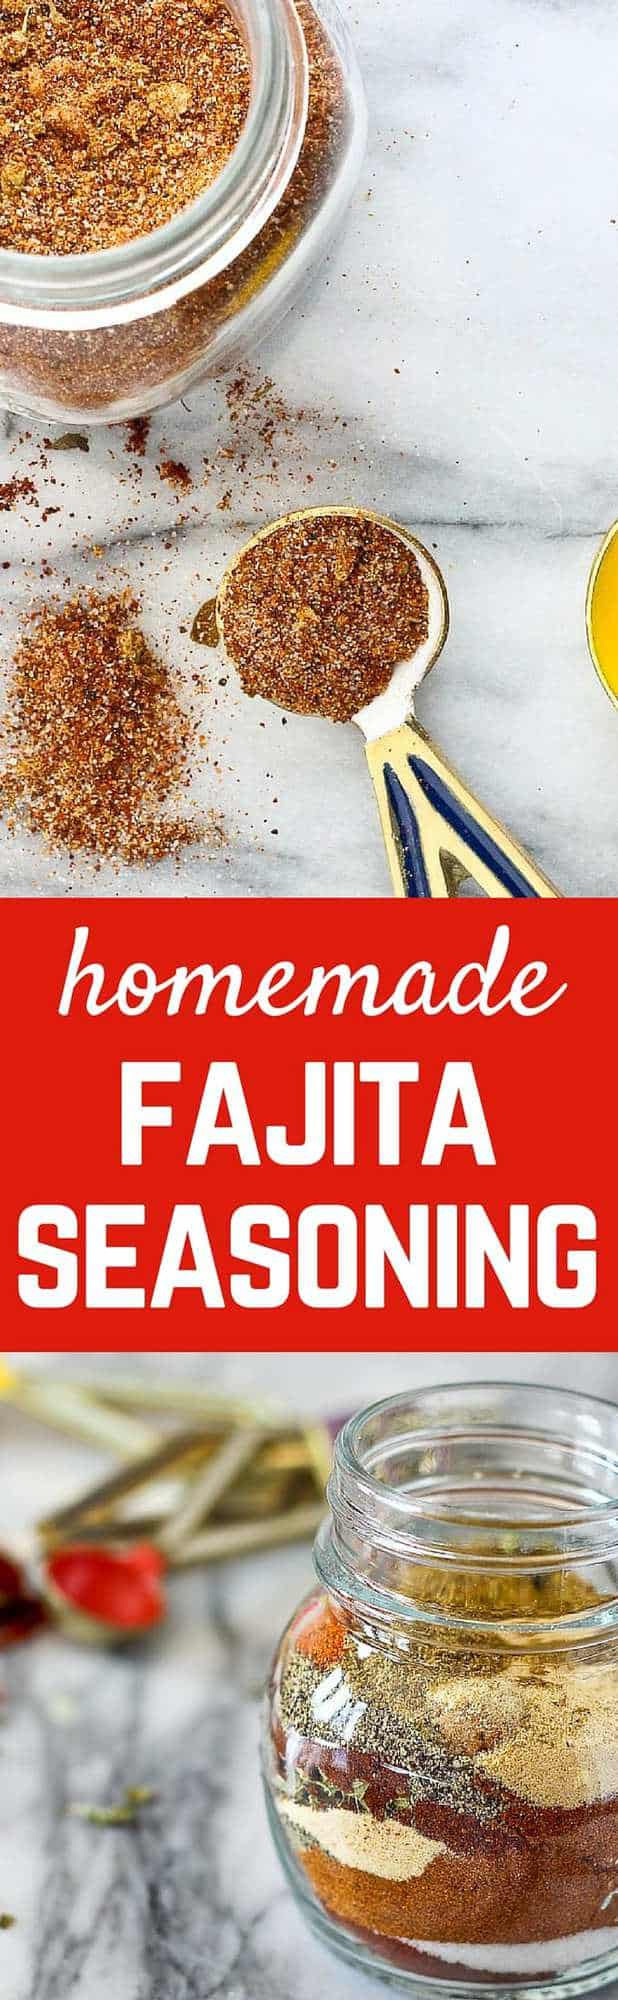 Making homemade fajita seasoning is so easy! No additives or artificial anything! Try it and you'll never go back to store bought packets. Get the EASY recipe on RachelCooks.com!